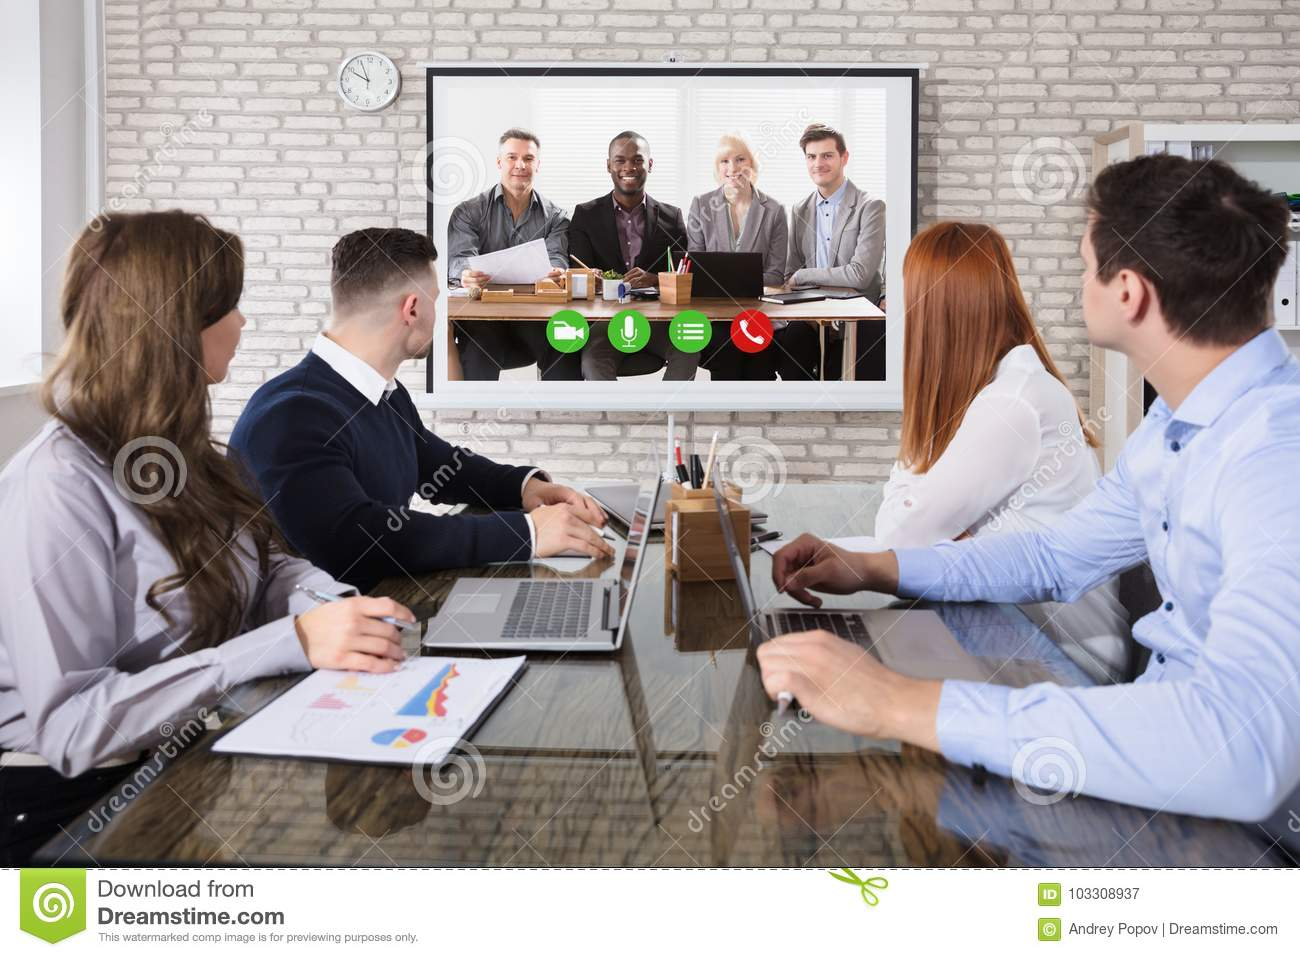 Kollege, der Video-Conferencing im Büro tut